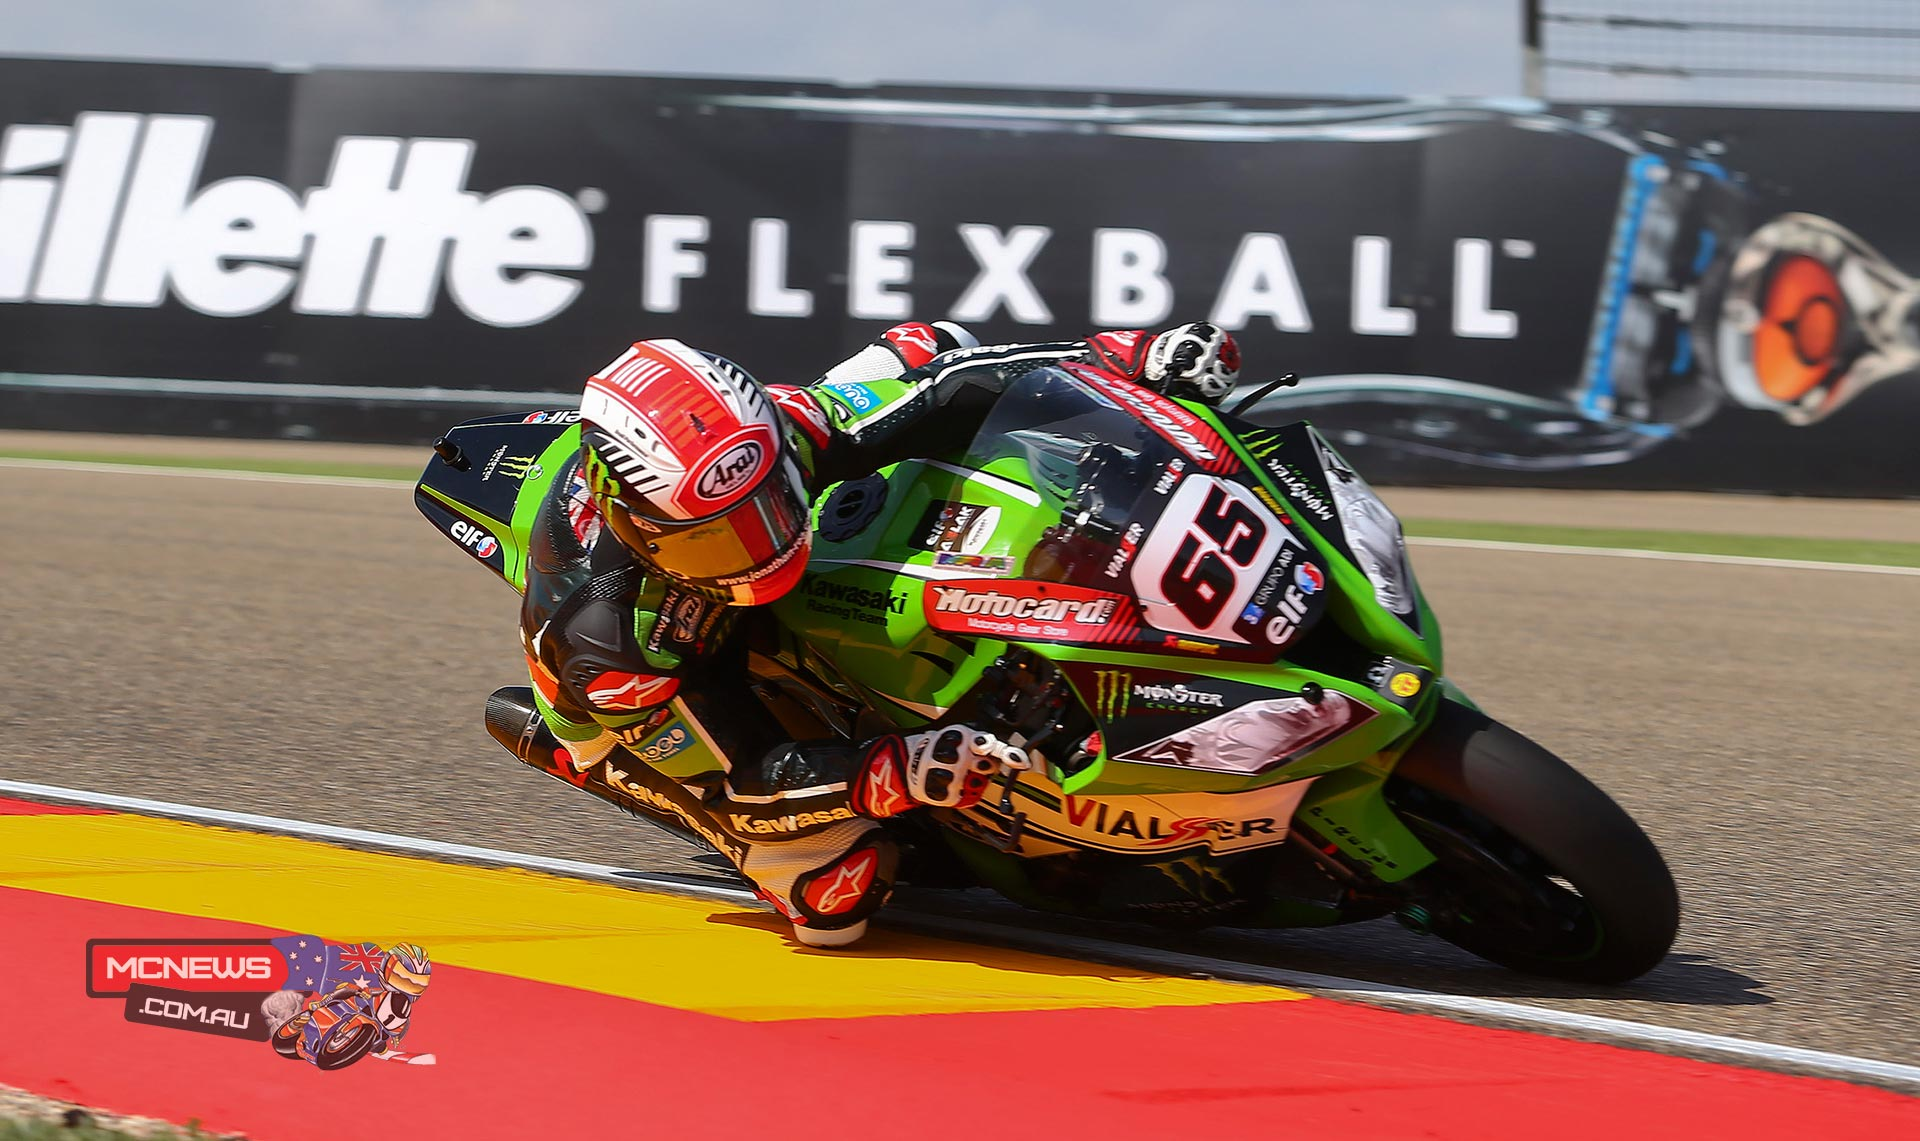 "Jonathan Rea #65 - Kawasaki Racing Team - 1st - ""This is the first event that we have to all use the new electronics so we had a few things to sort out. We have made a good step and surely we will try something more in the third free practice session. We are looking quite good and I think that if we have a good feeling in the Tissot-Superpole then for sure I will push for the best placement on the grid. It would be nice to get three pole positions in a row but our focus has to be the two races, which I still expect to be really close."""